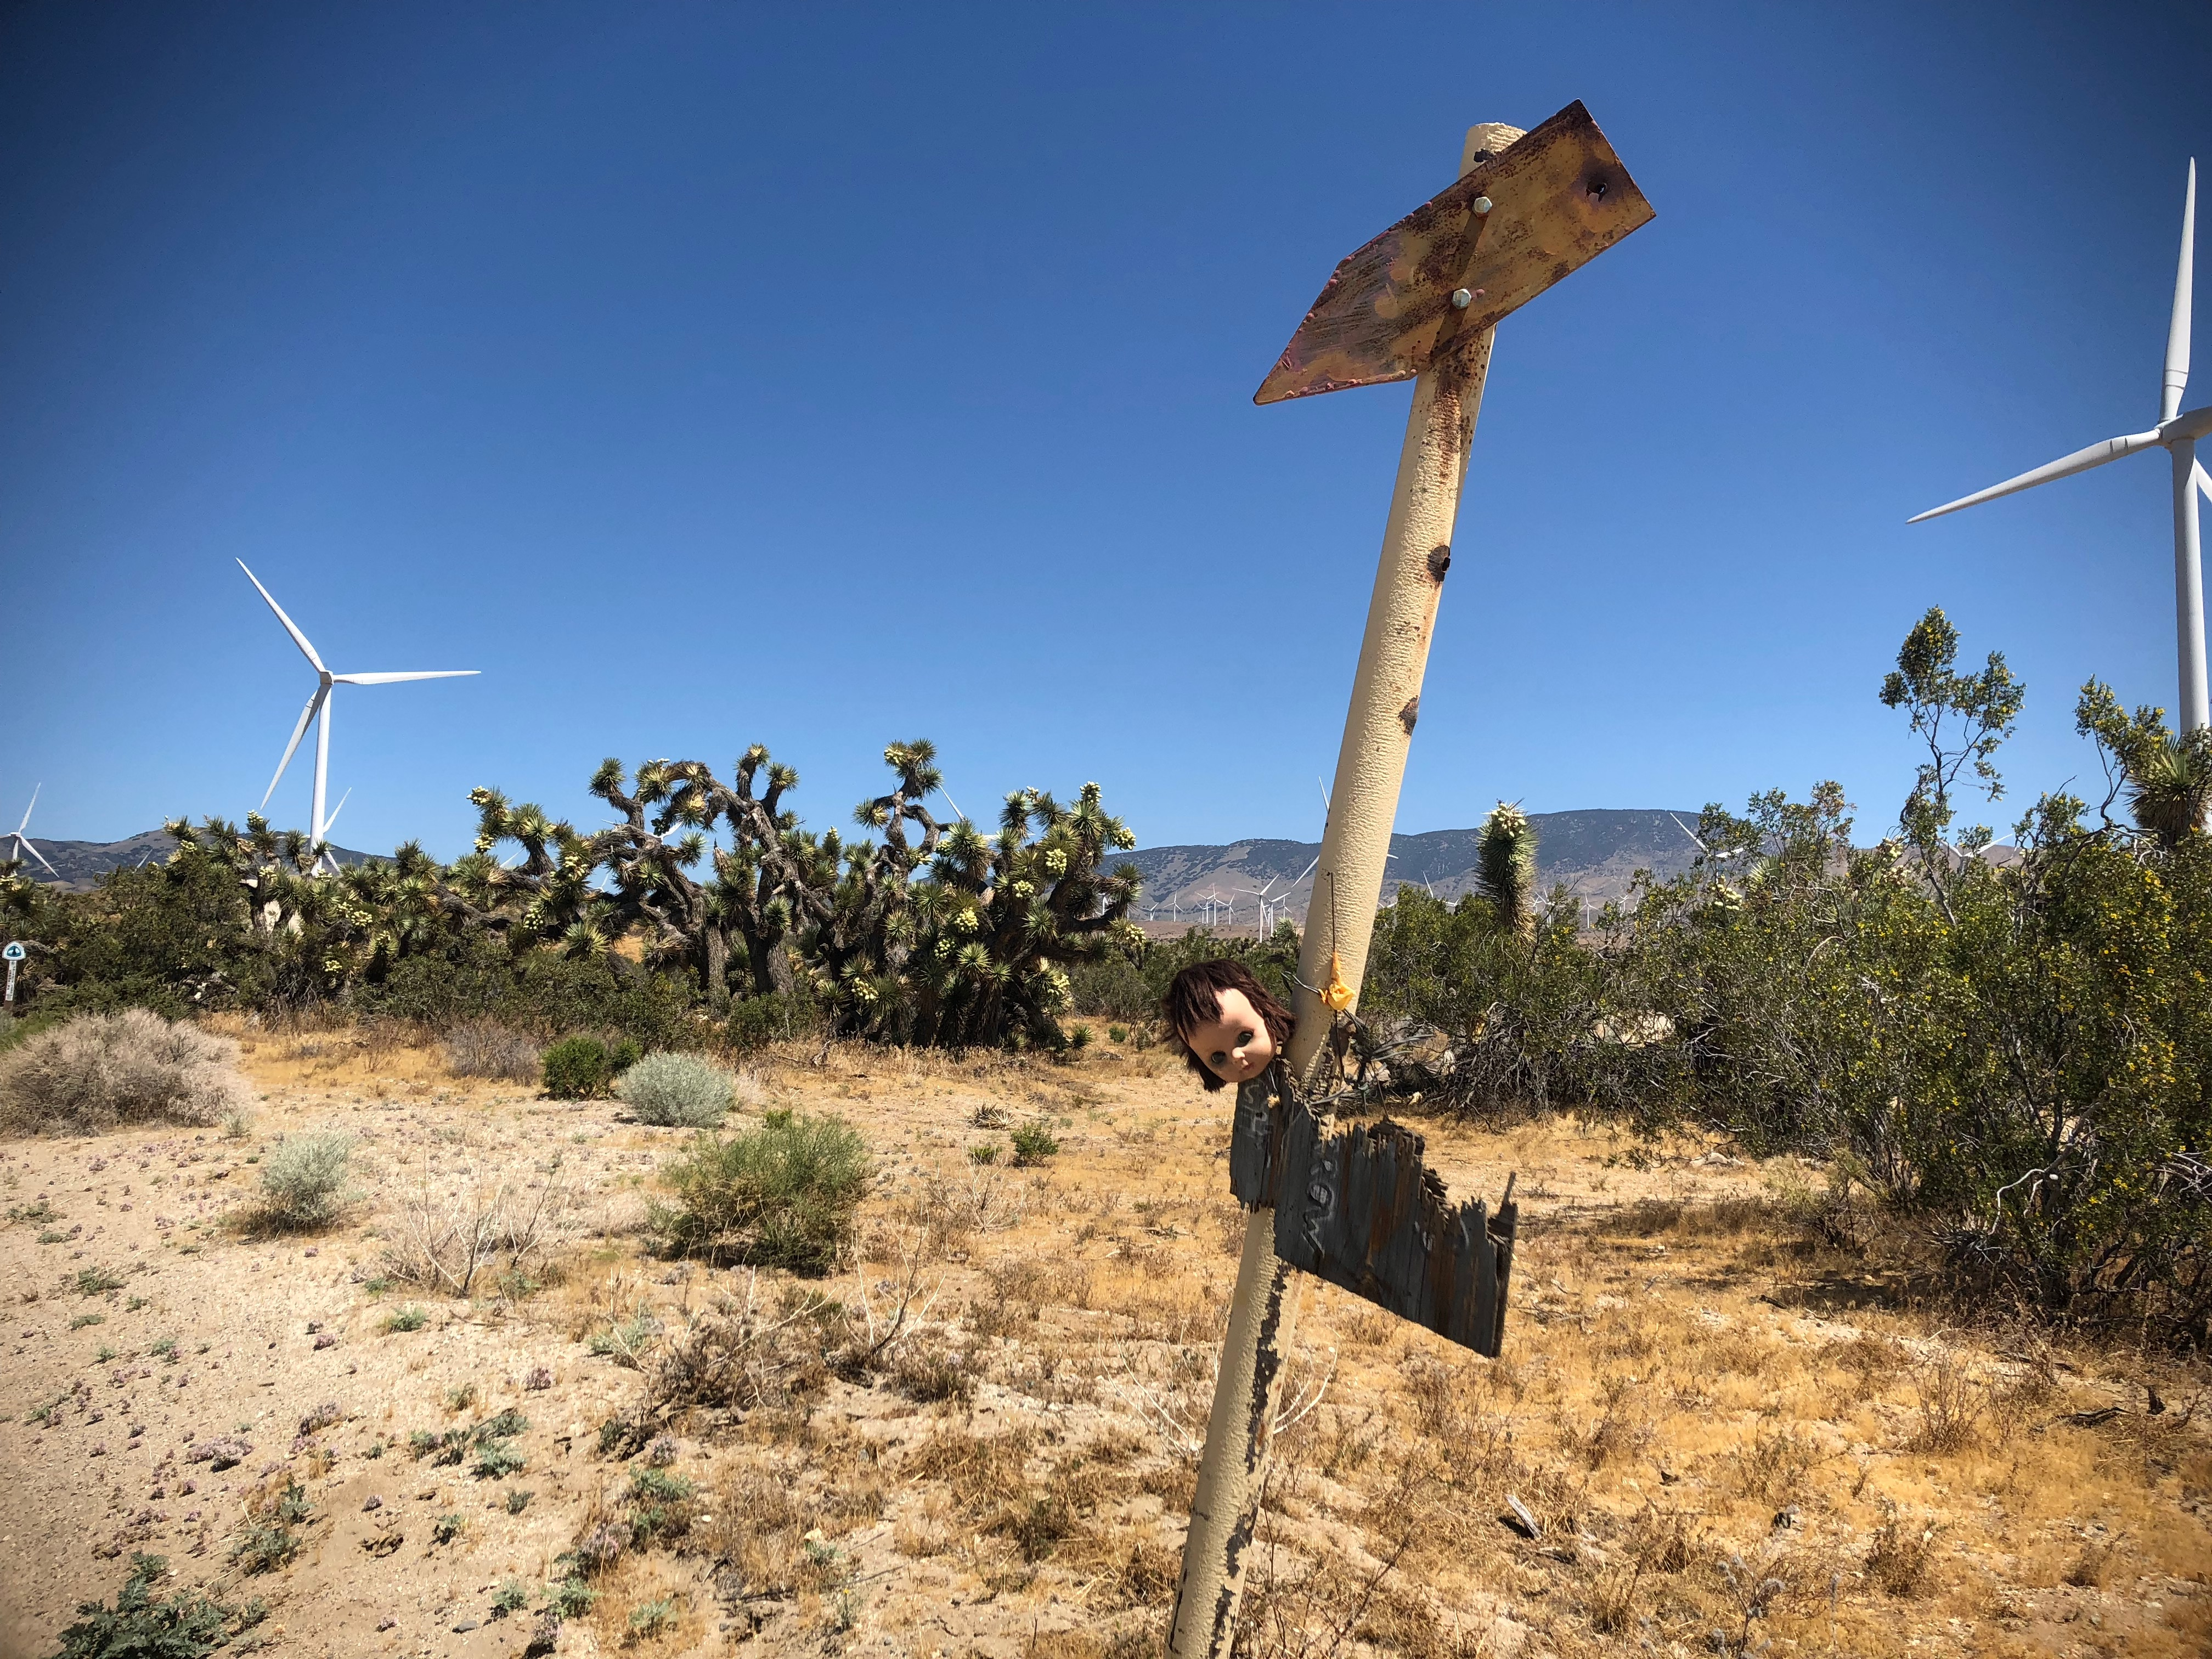 Days Seven to Ten: Night Hiking, Wind Farms, and MAGIC - The Trek